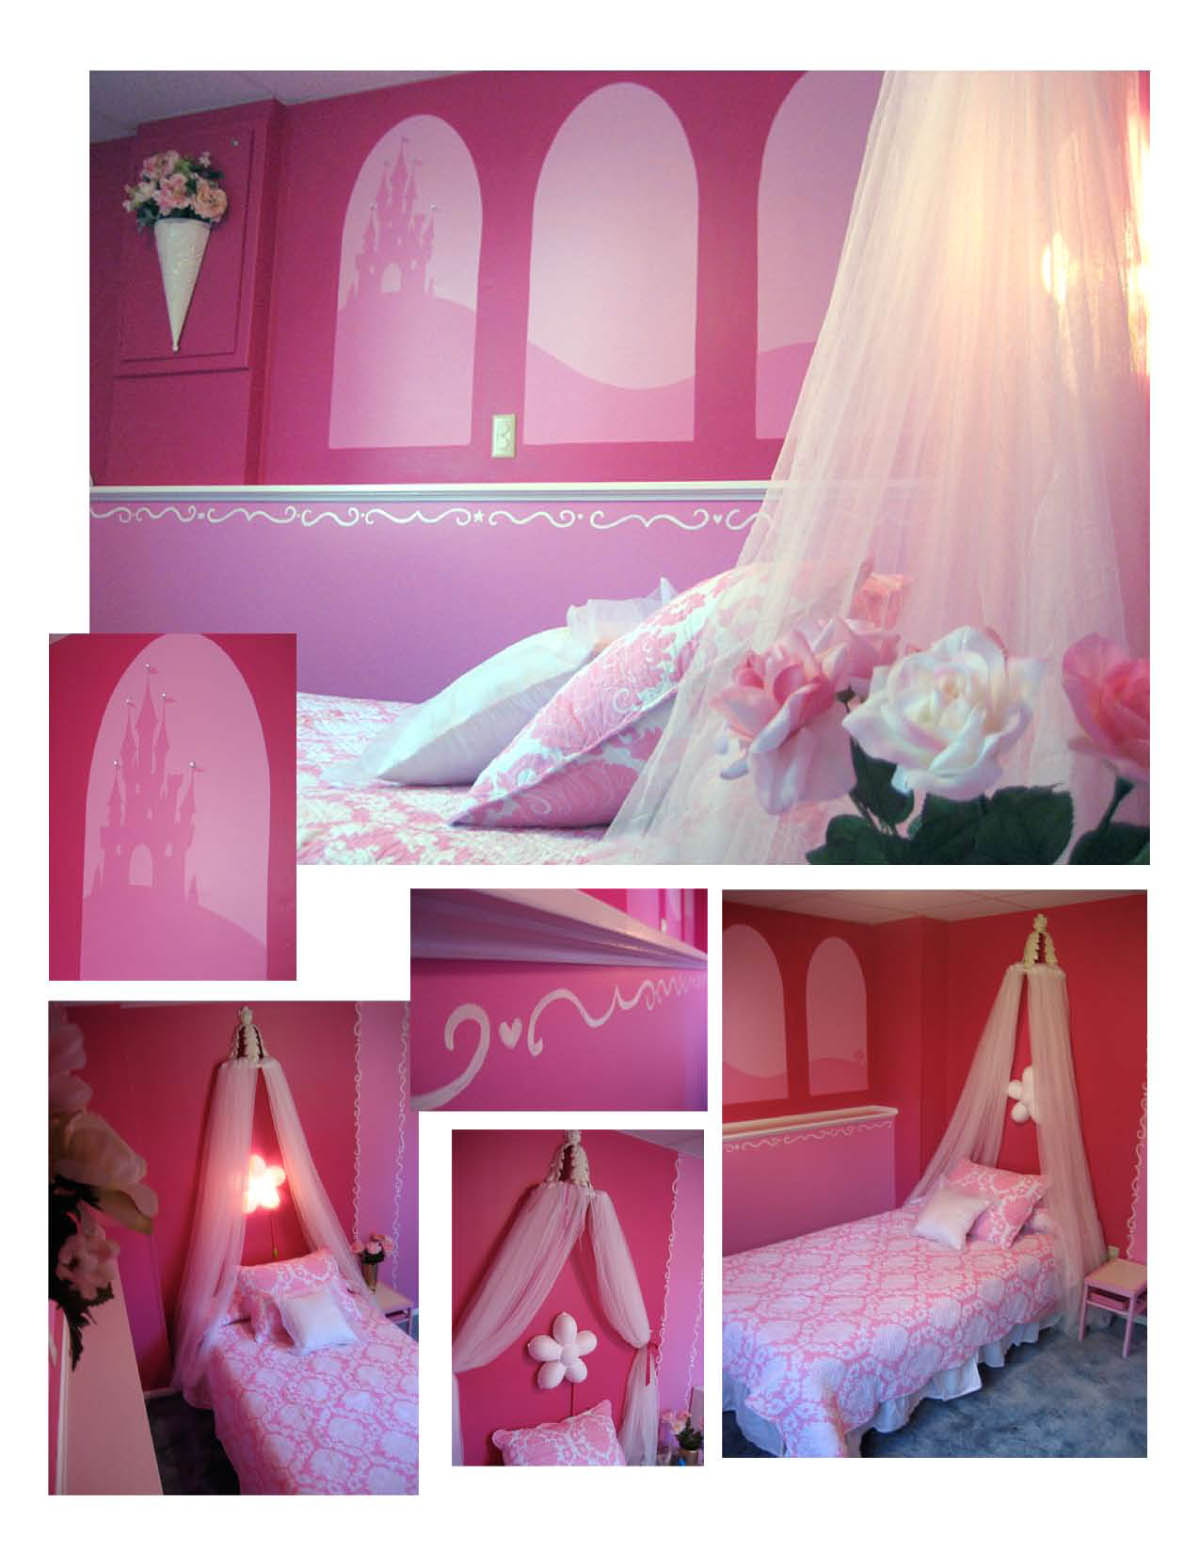 Id mommy diy princess themed bedroom by heidi panelli for Princess themed bed